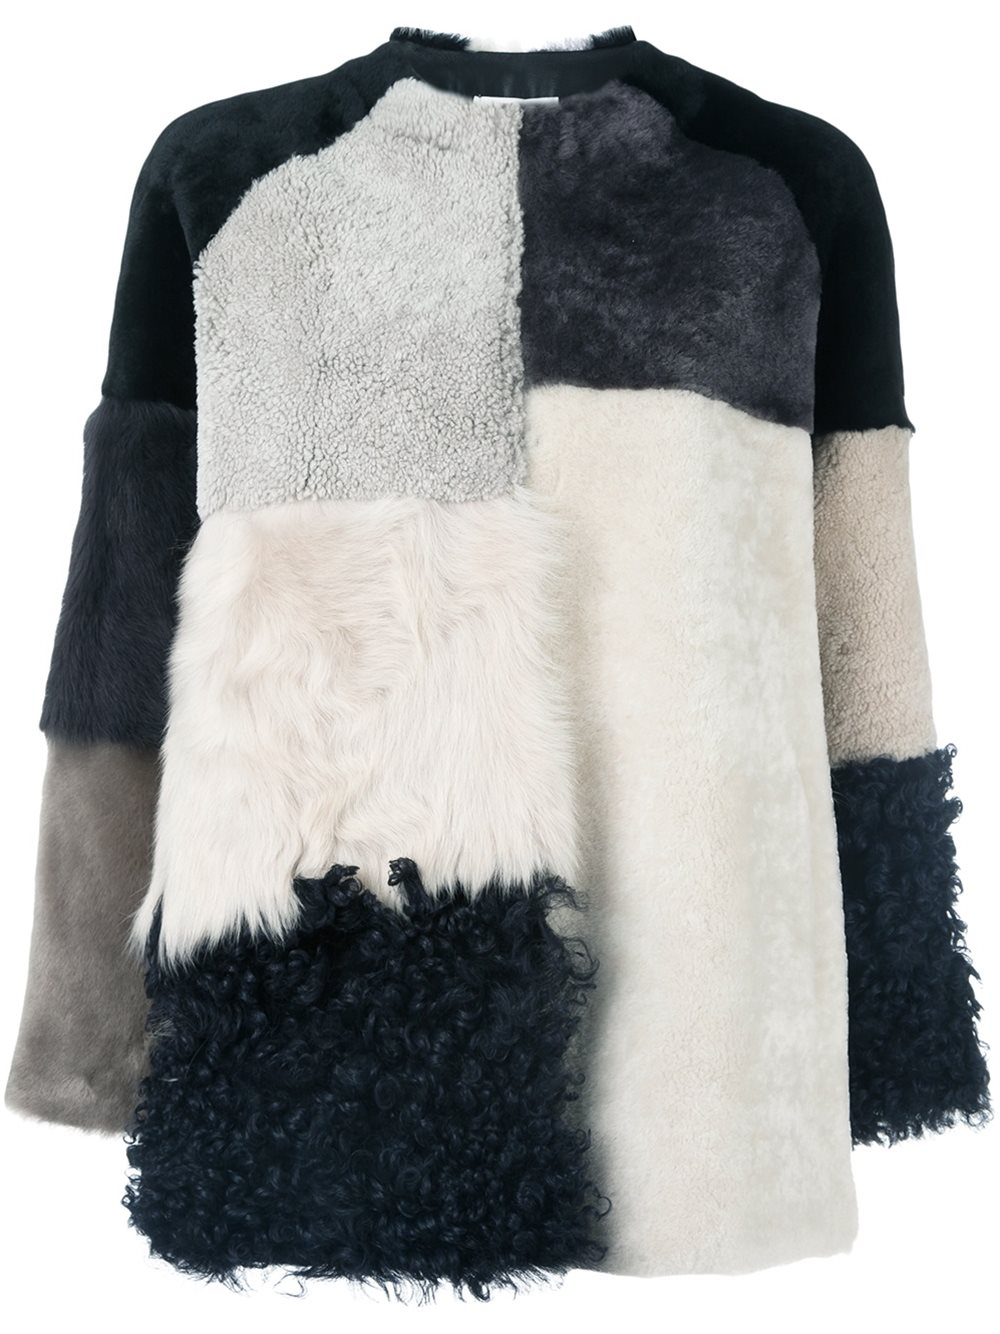 Colour Block Fur Jacket, P.A.R.O.S.H; €1597 Farfetch https://goo.gl/k7l0fZ